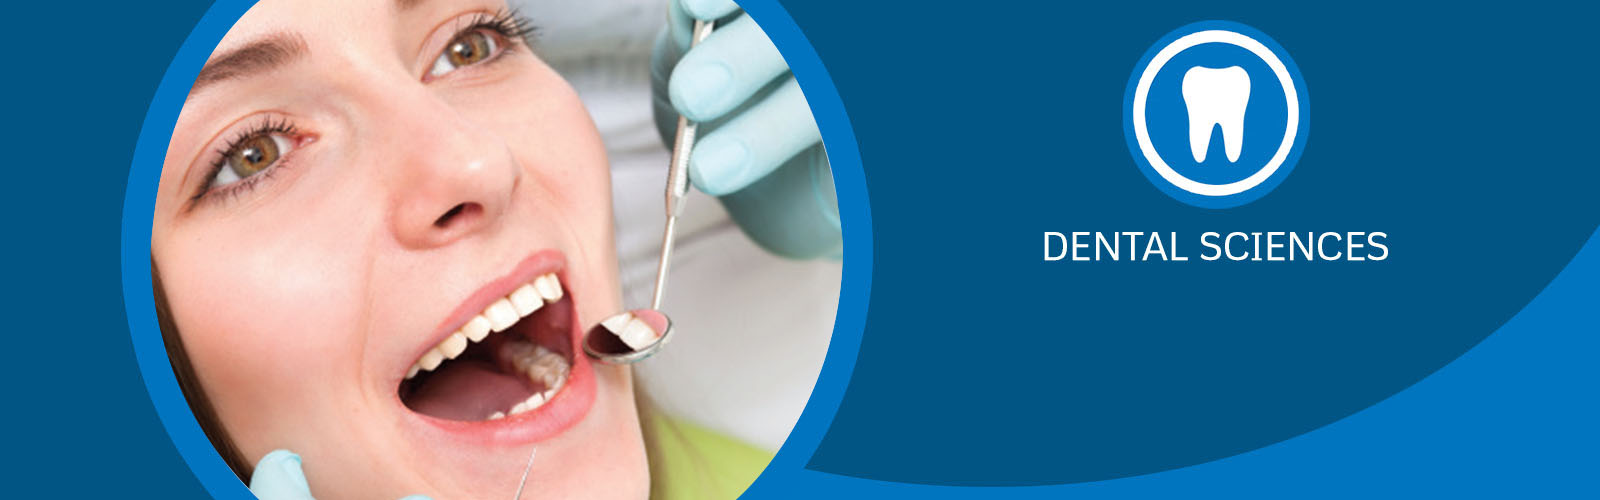 Dental Oncology